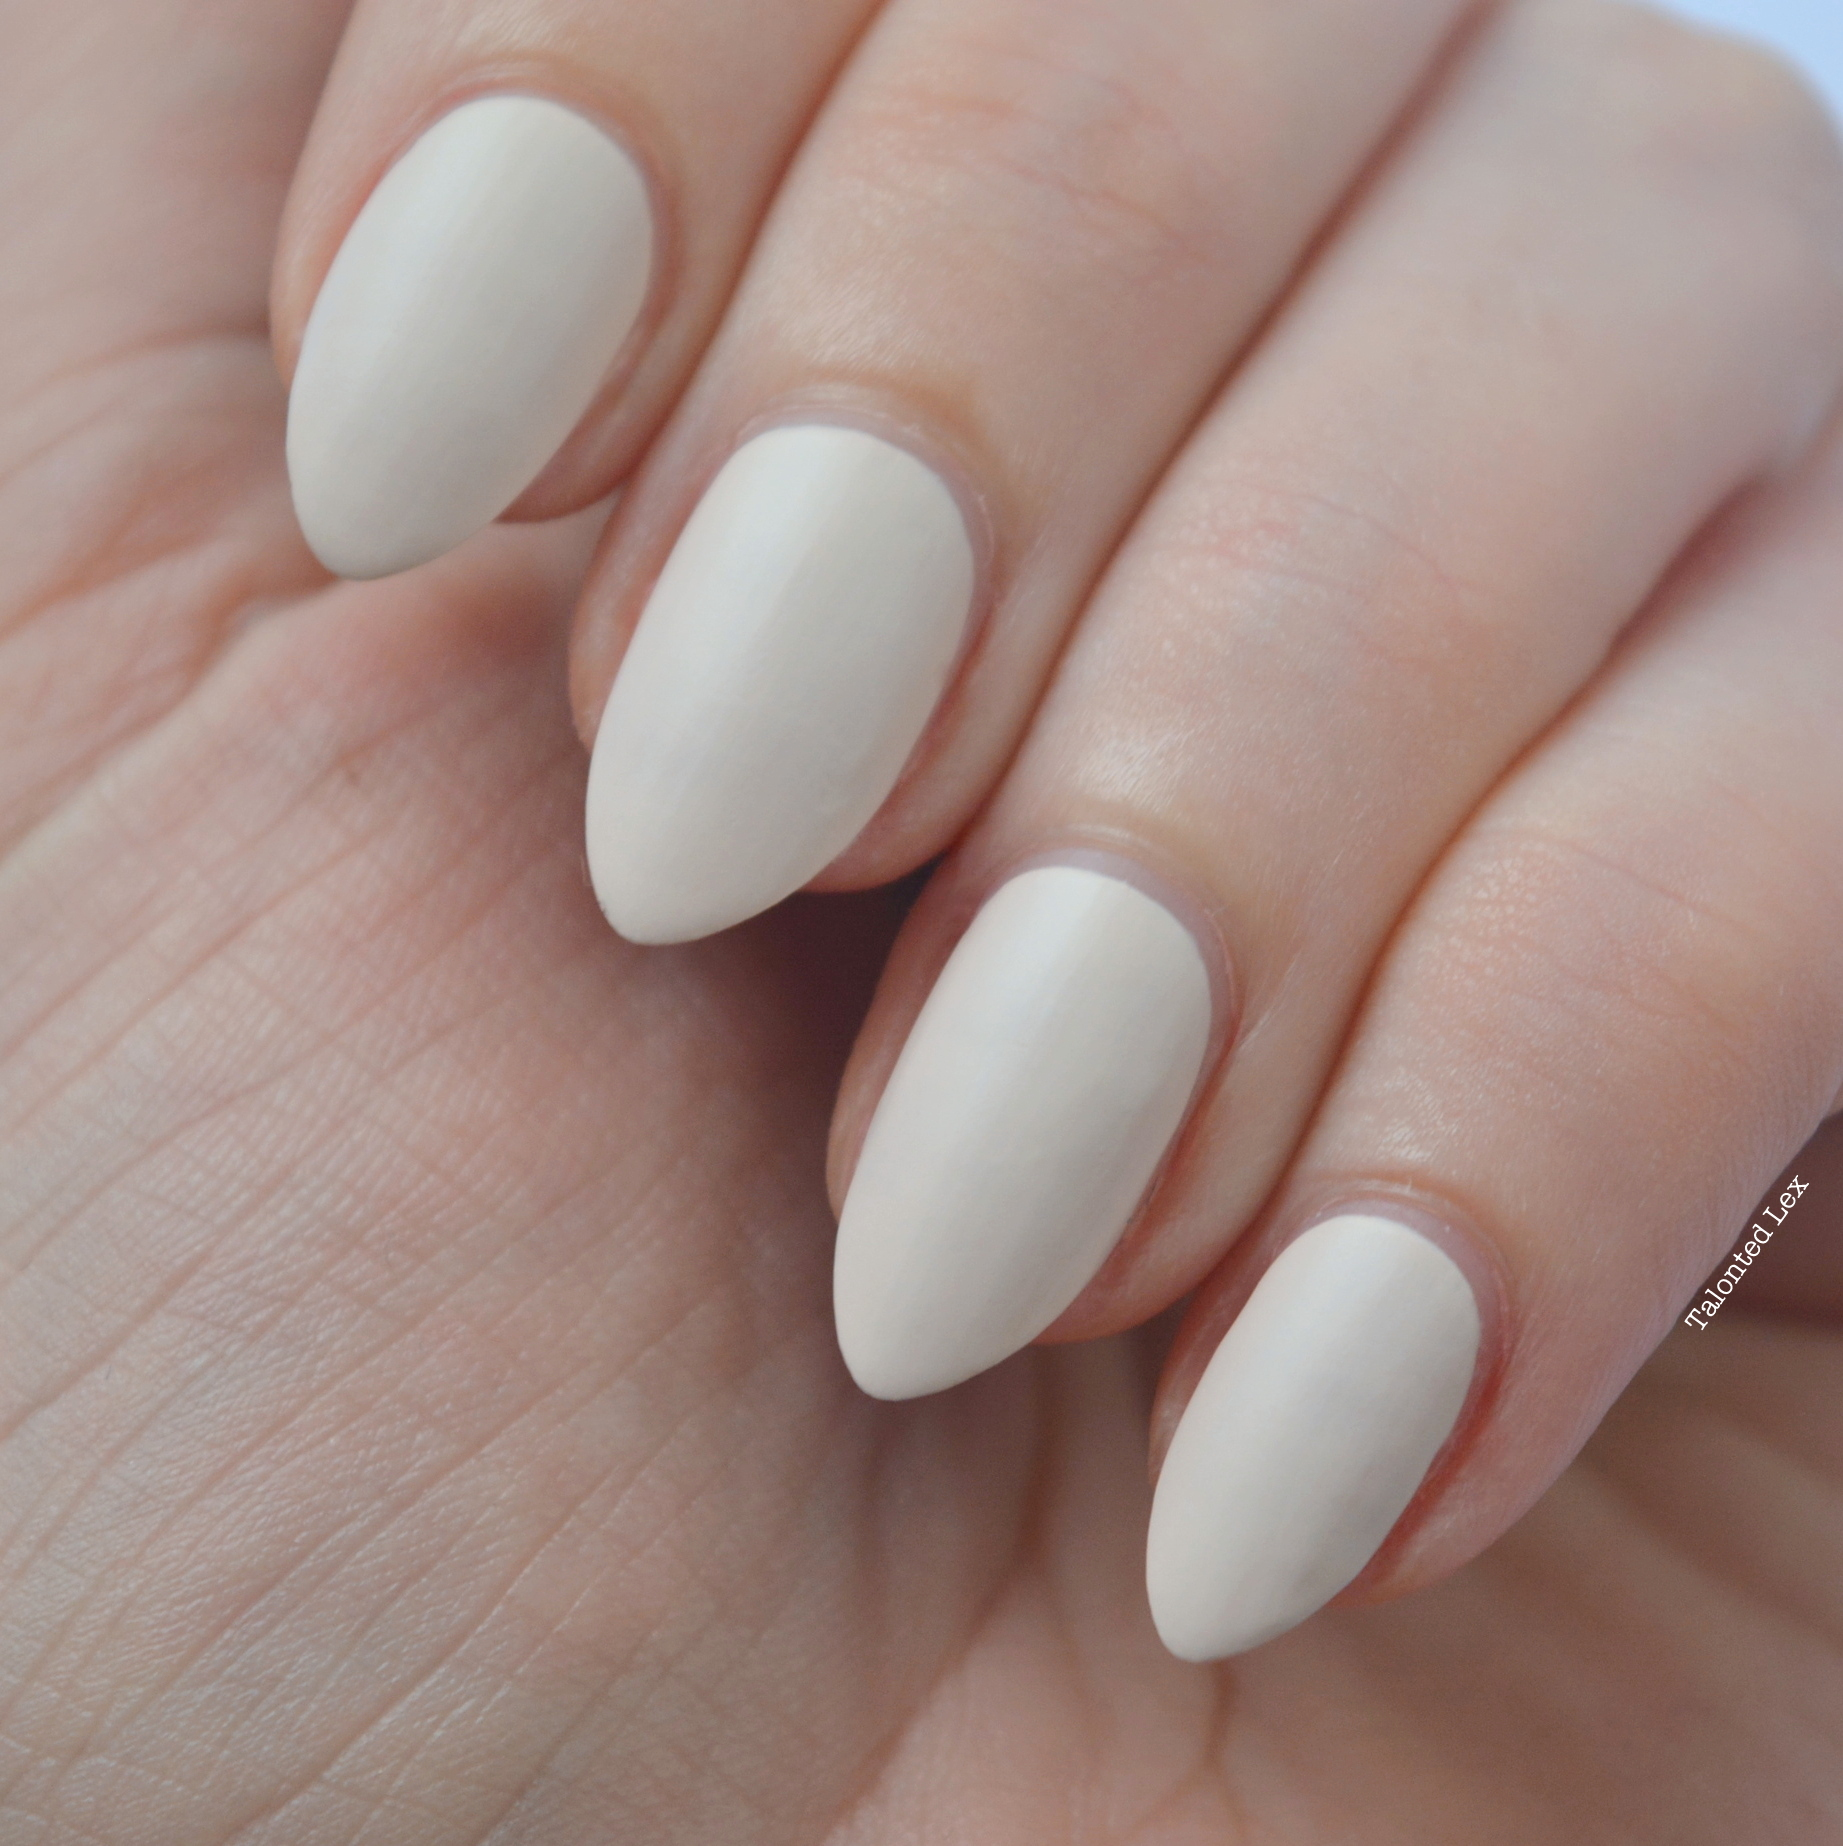 essie-Cashmere-Collection-matte-review-swatches-wrap-me-up-talonted-lex